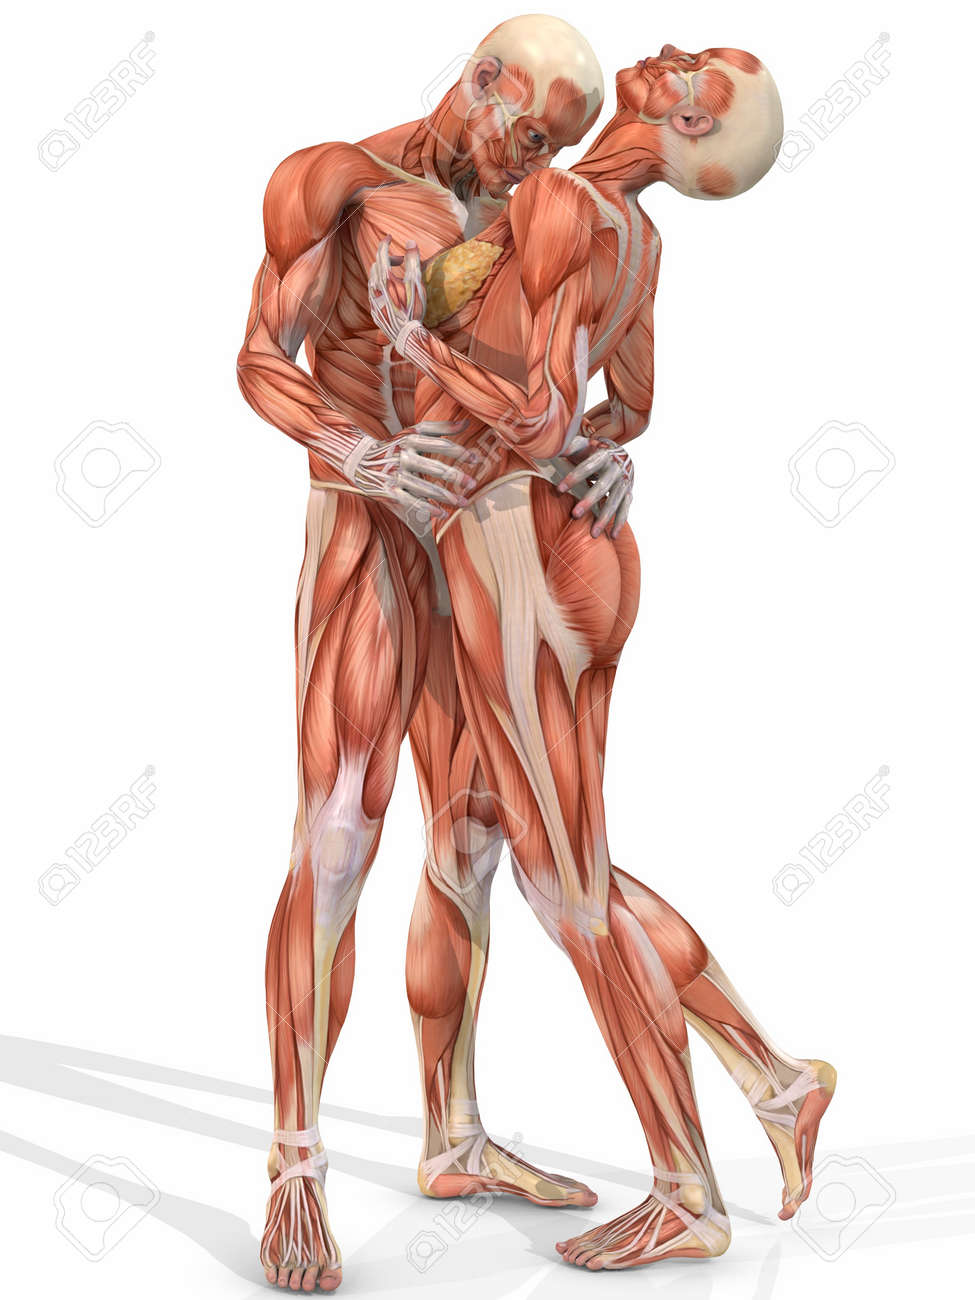 Female And Male Anatomic Body - Couple Stock Photo, Picture And ...